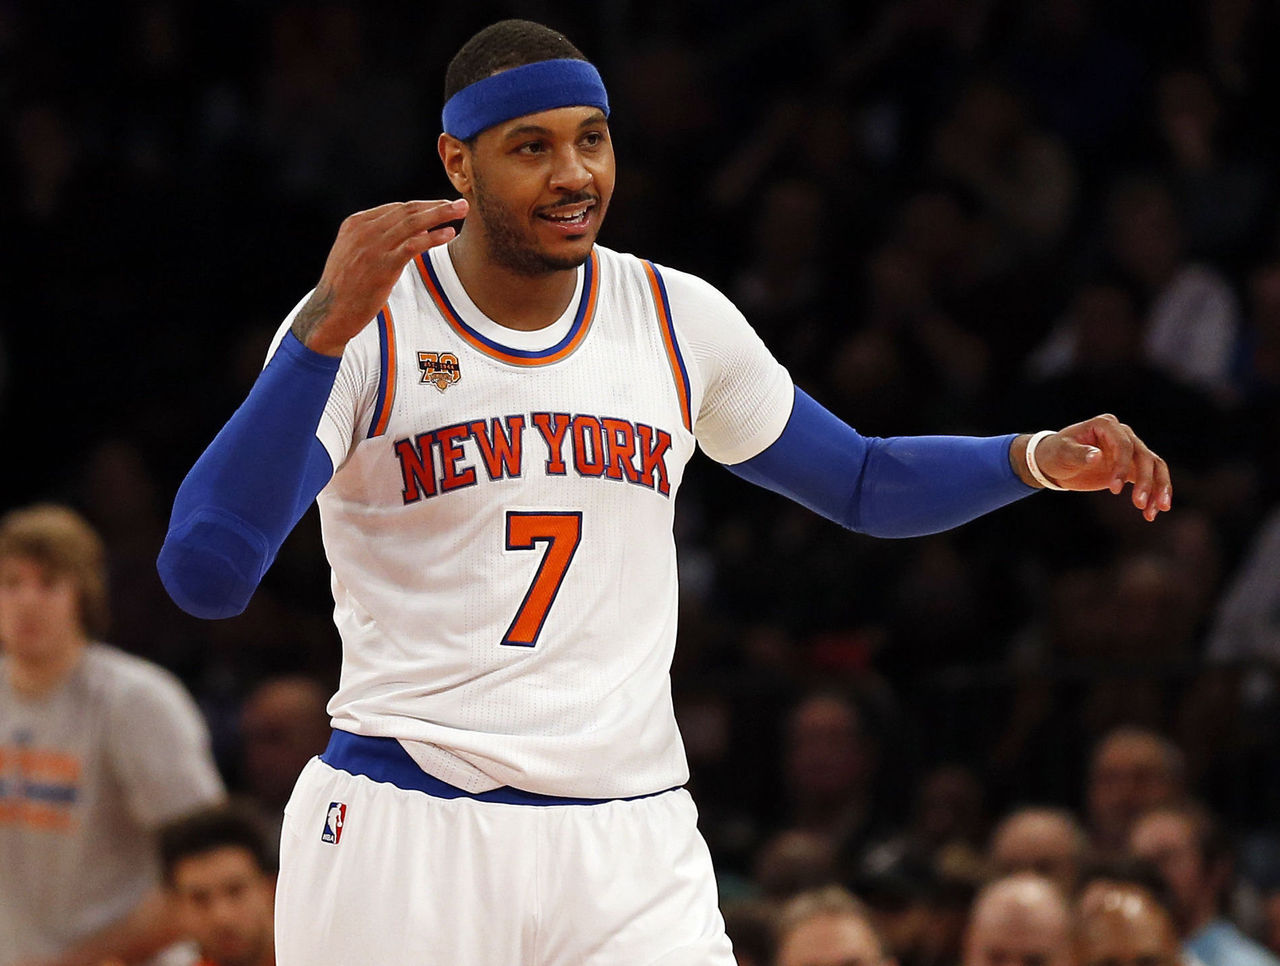 Cropped 2017 01 13t035412z 1672869859 nocid rtrmadp 3 nba chicago bulls at new york knicks